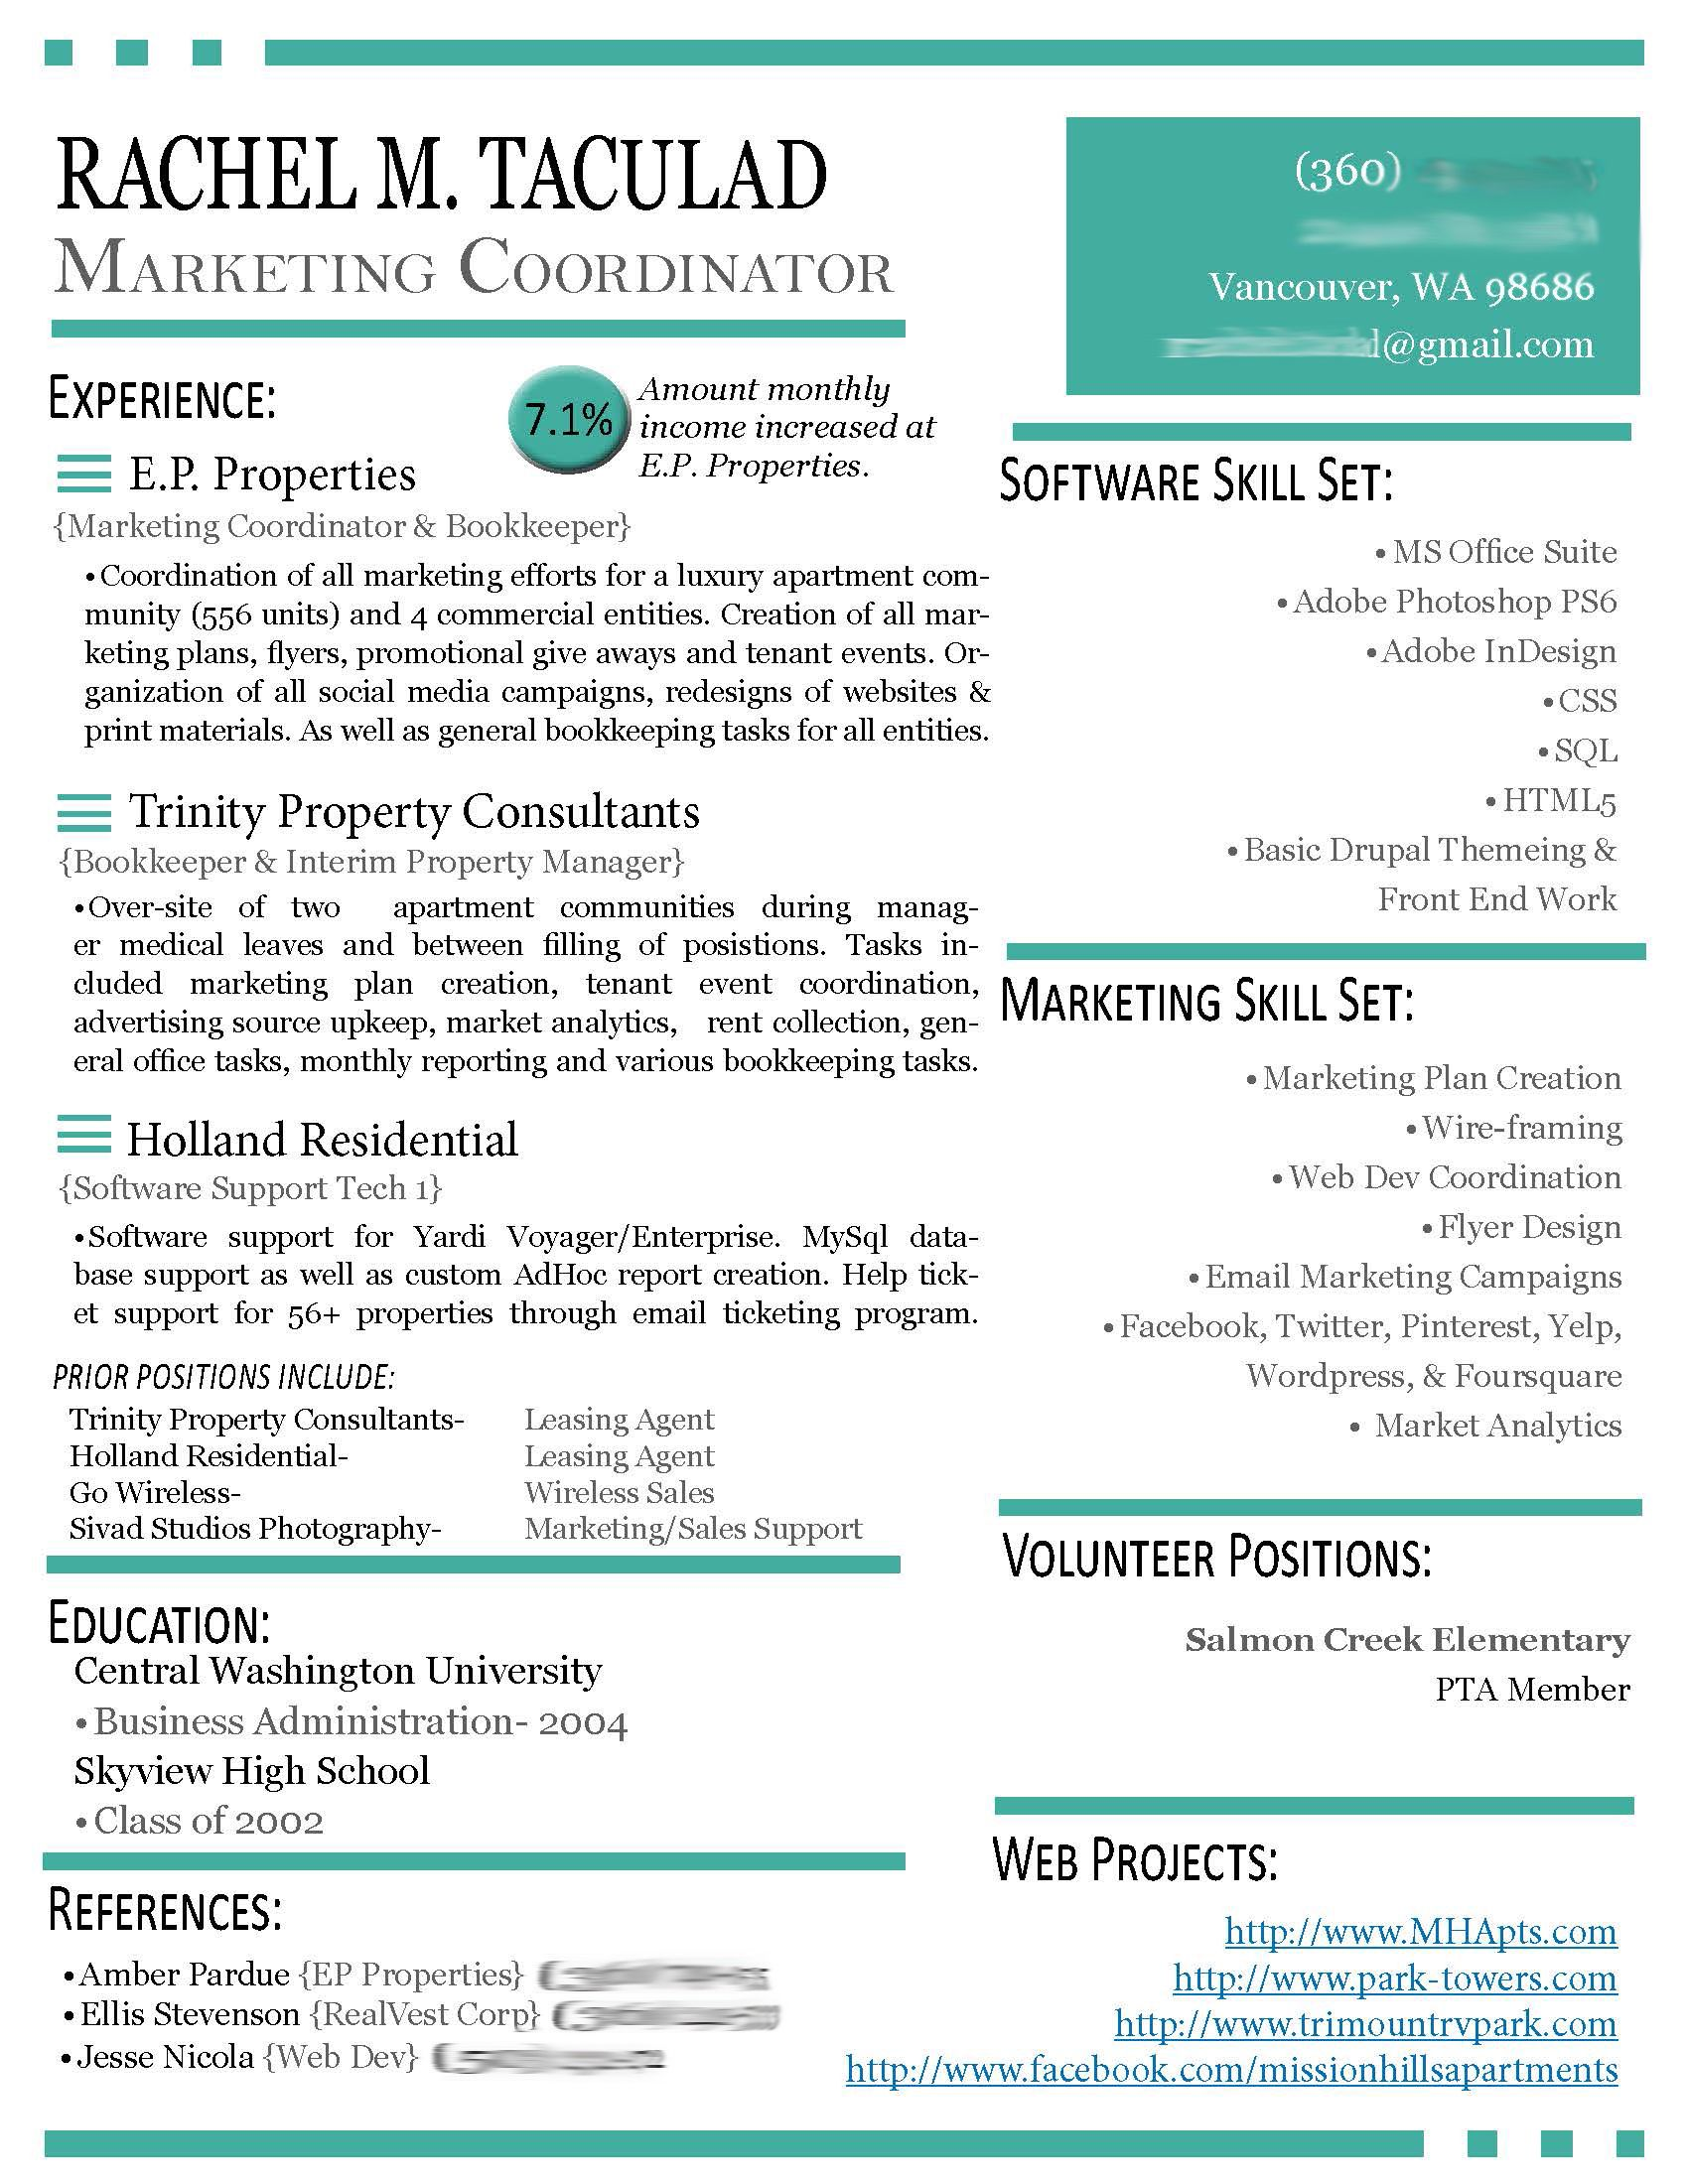 Opposenewapstandardsus  Winning  Images About Work Stuff On Pinterest  Resume Professional  With Handsome  Images About Work Stuff On Pinterest  Resume Professional Resume Template And Resume Templates With Agreeable Resume Accomplishments Examples Also Software Engineer Resume Examples In Addition Resume Examples First Job And Update My Resume As Well As Combination Resume Definition Additionally Formatting Resume From Pinterestcom With Opposenewapstandardsus  Handsome  Images About Work Stuff On Pinterest  Resume Professional  With Agreeable  Images About Work Stuff On Pinterest  Resume Professional Resume Template And Resume Templates And Winning Resume Accomplishments Examples Also Software Engineer Resume Examples In Addition Resume Examples First Job From Pinterestcom